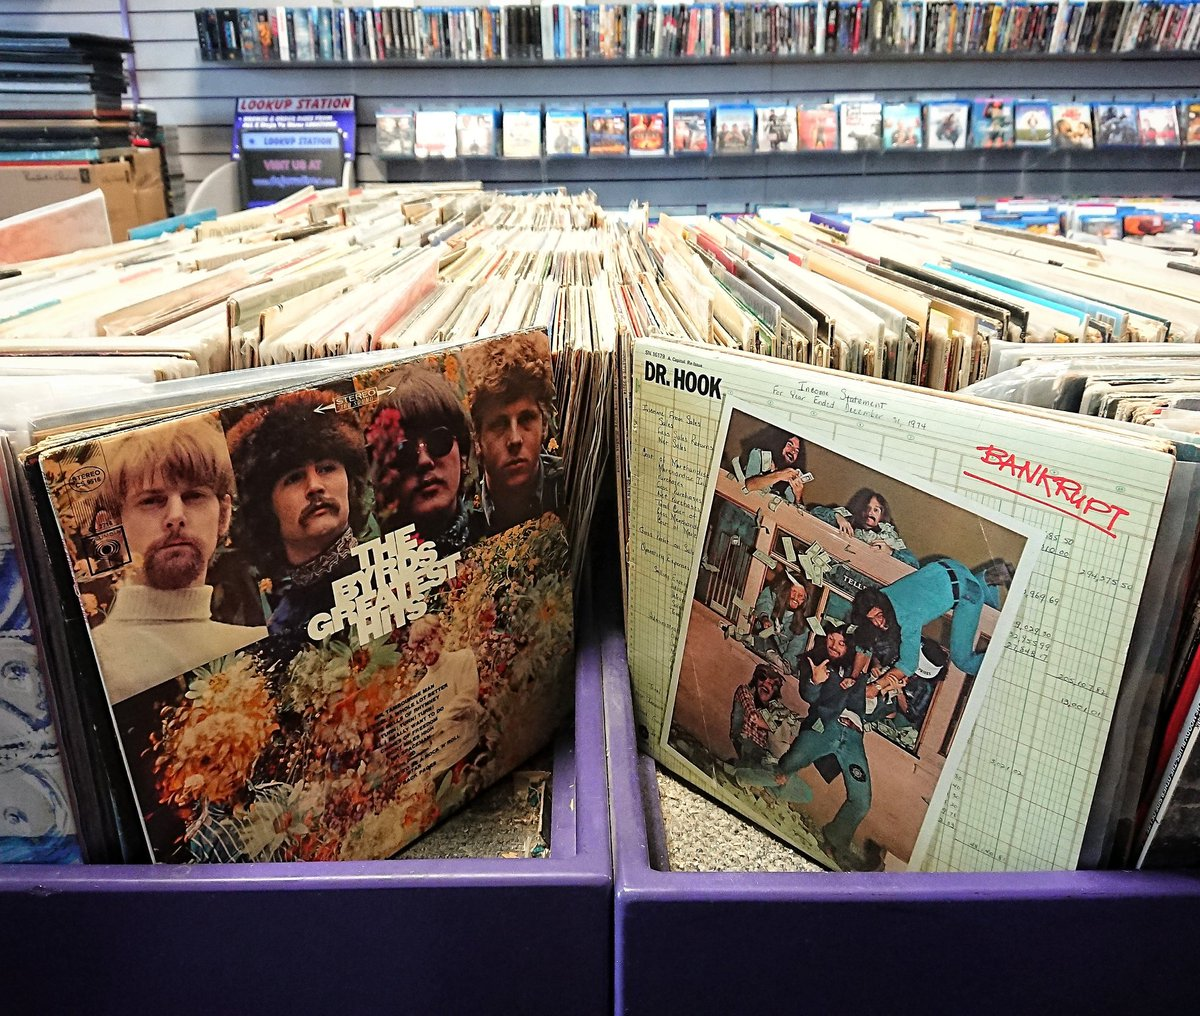 Vinyl bins are being refilled today!  #Vinyl #UsedVinyl #Records #UsedRecords #TheByrds #DrHook<br>http://pic.twitter.com/13YvnyB5va